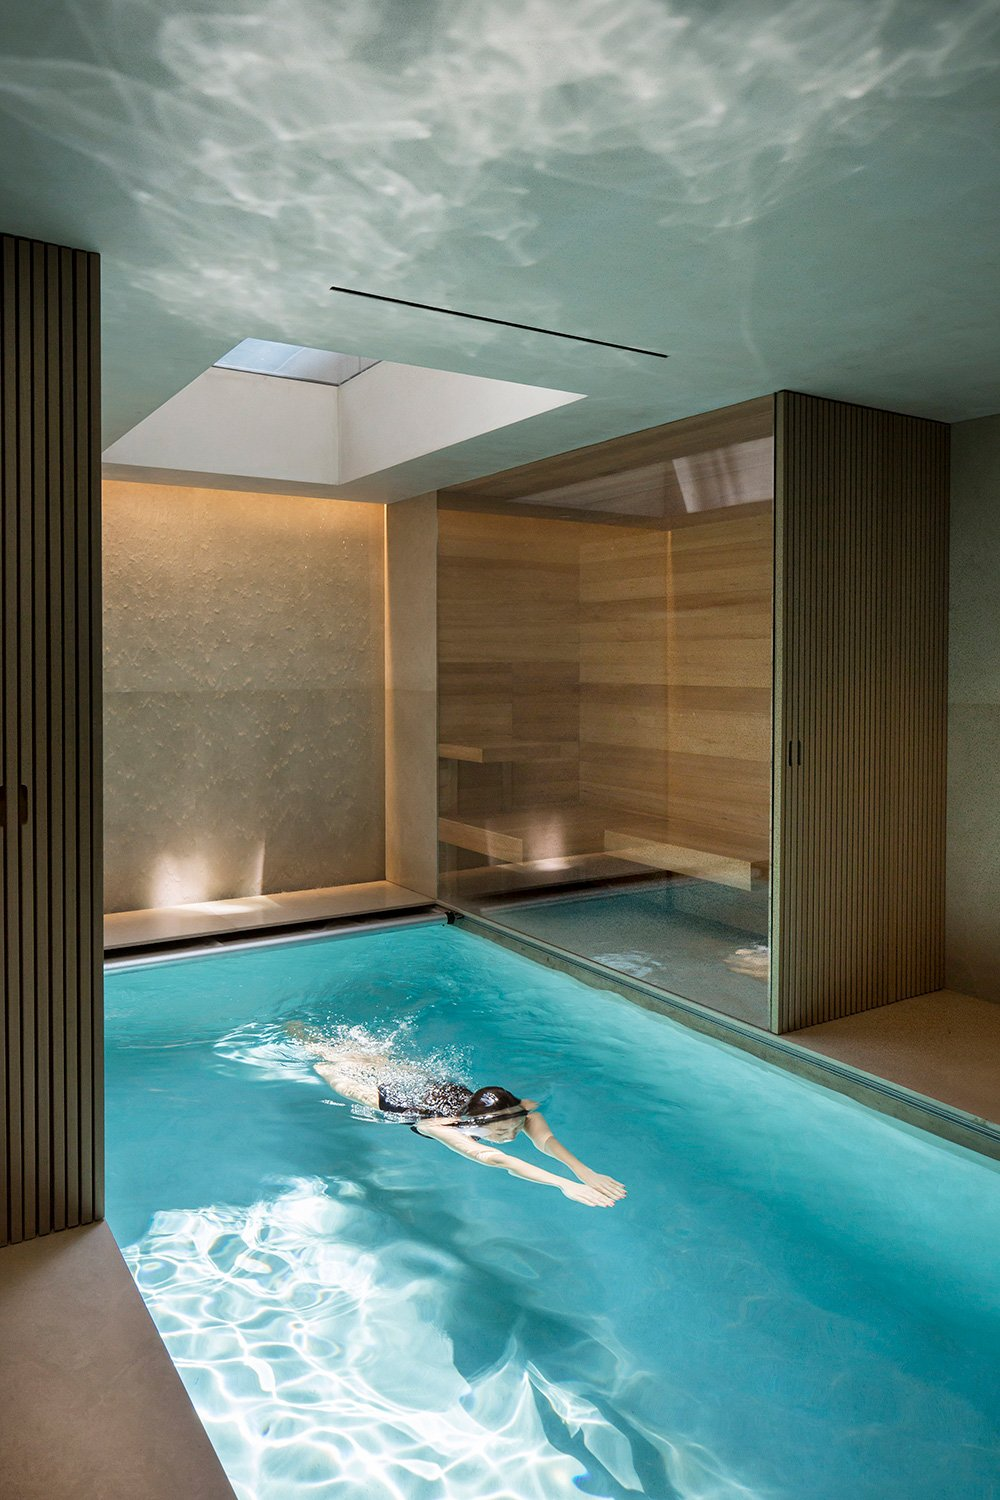 The natural lighting in the pool, guaranteed by a skylight, offers a dramaticity to this ambience. Filippo Bamberghi